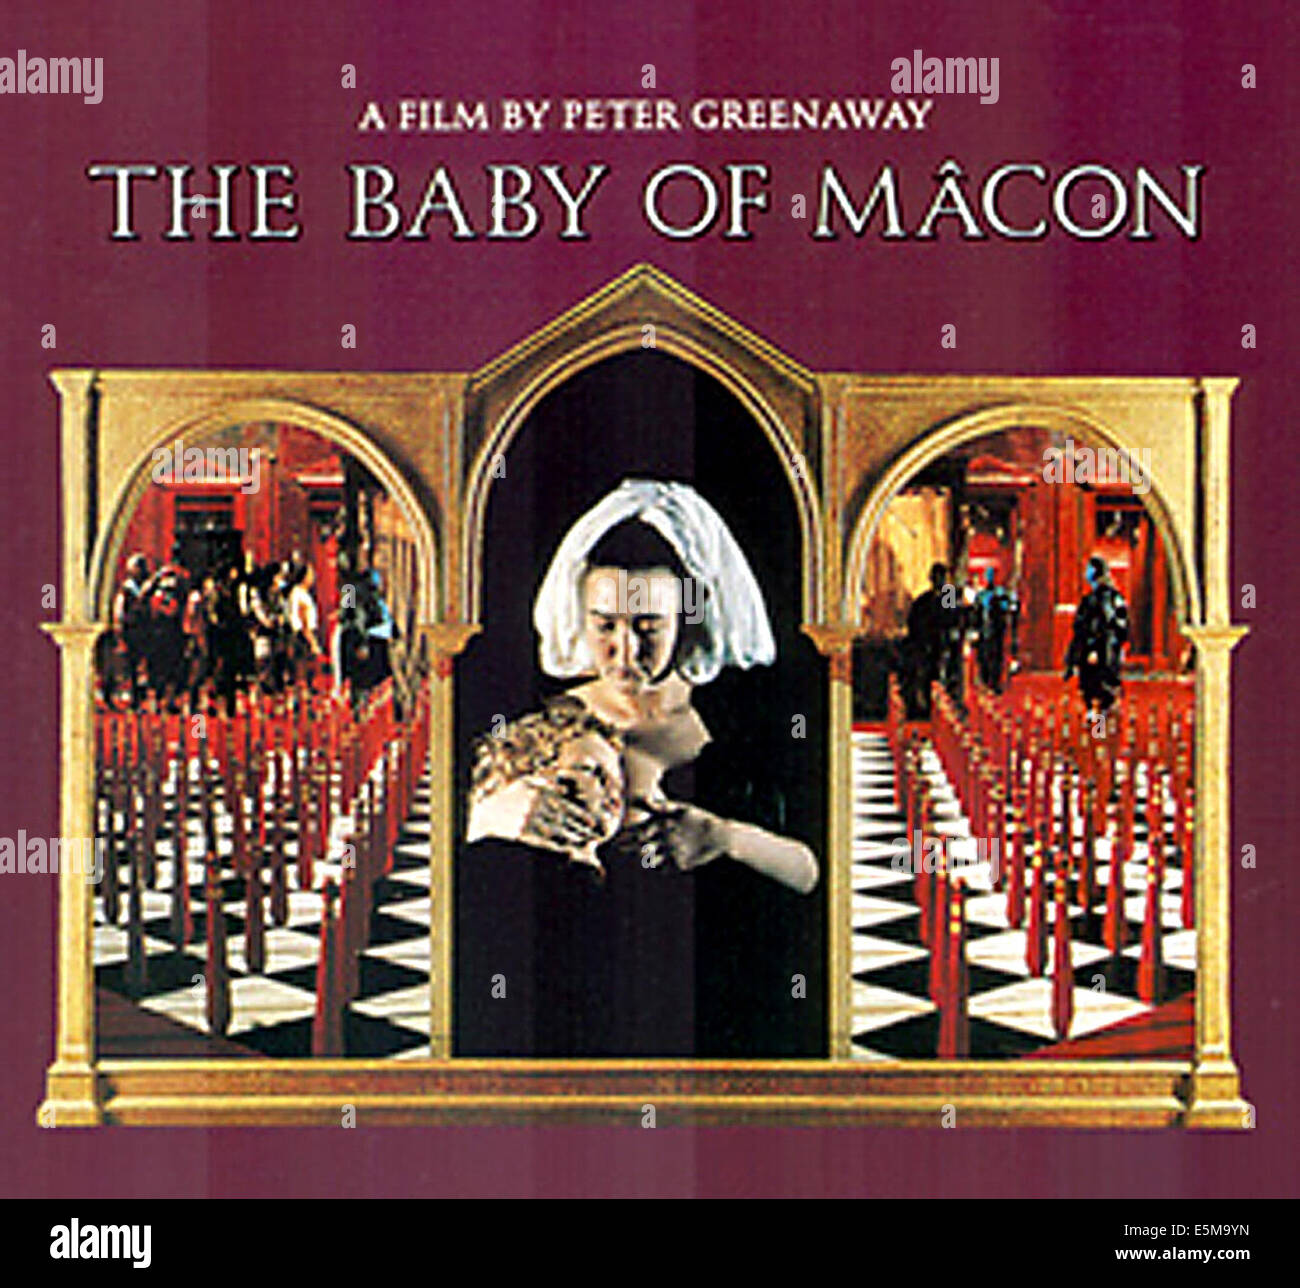 THE BABY OF MACON, poster art, 1993. - Stock Image